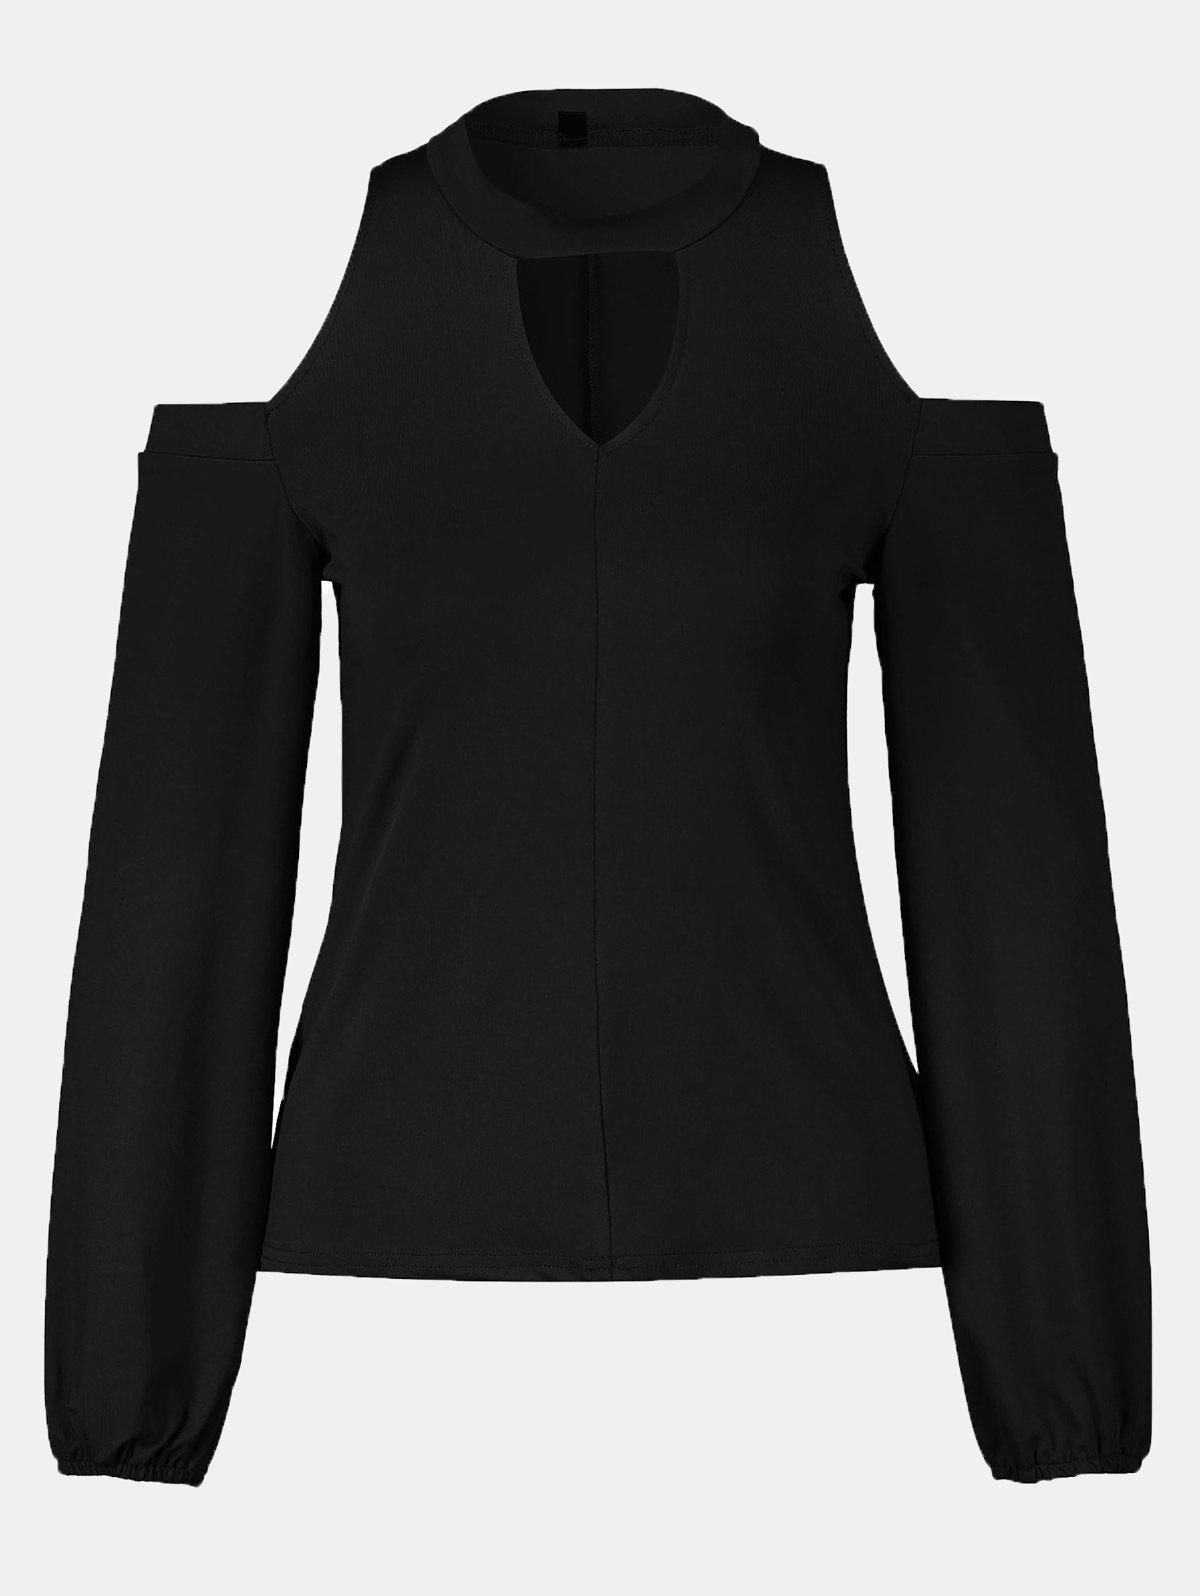 Women's Round Neck And A Long Sleeve Dew Shoulder Tops - BLACK L